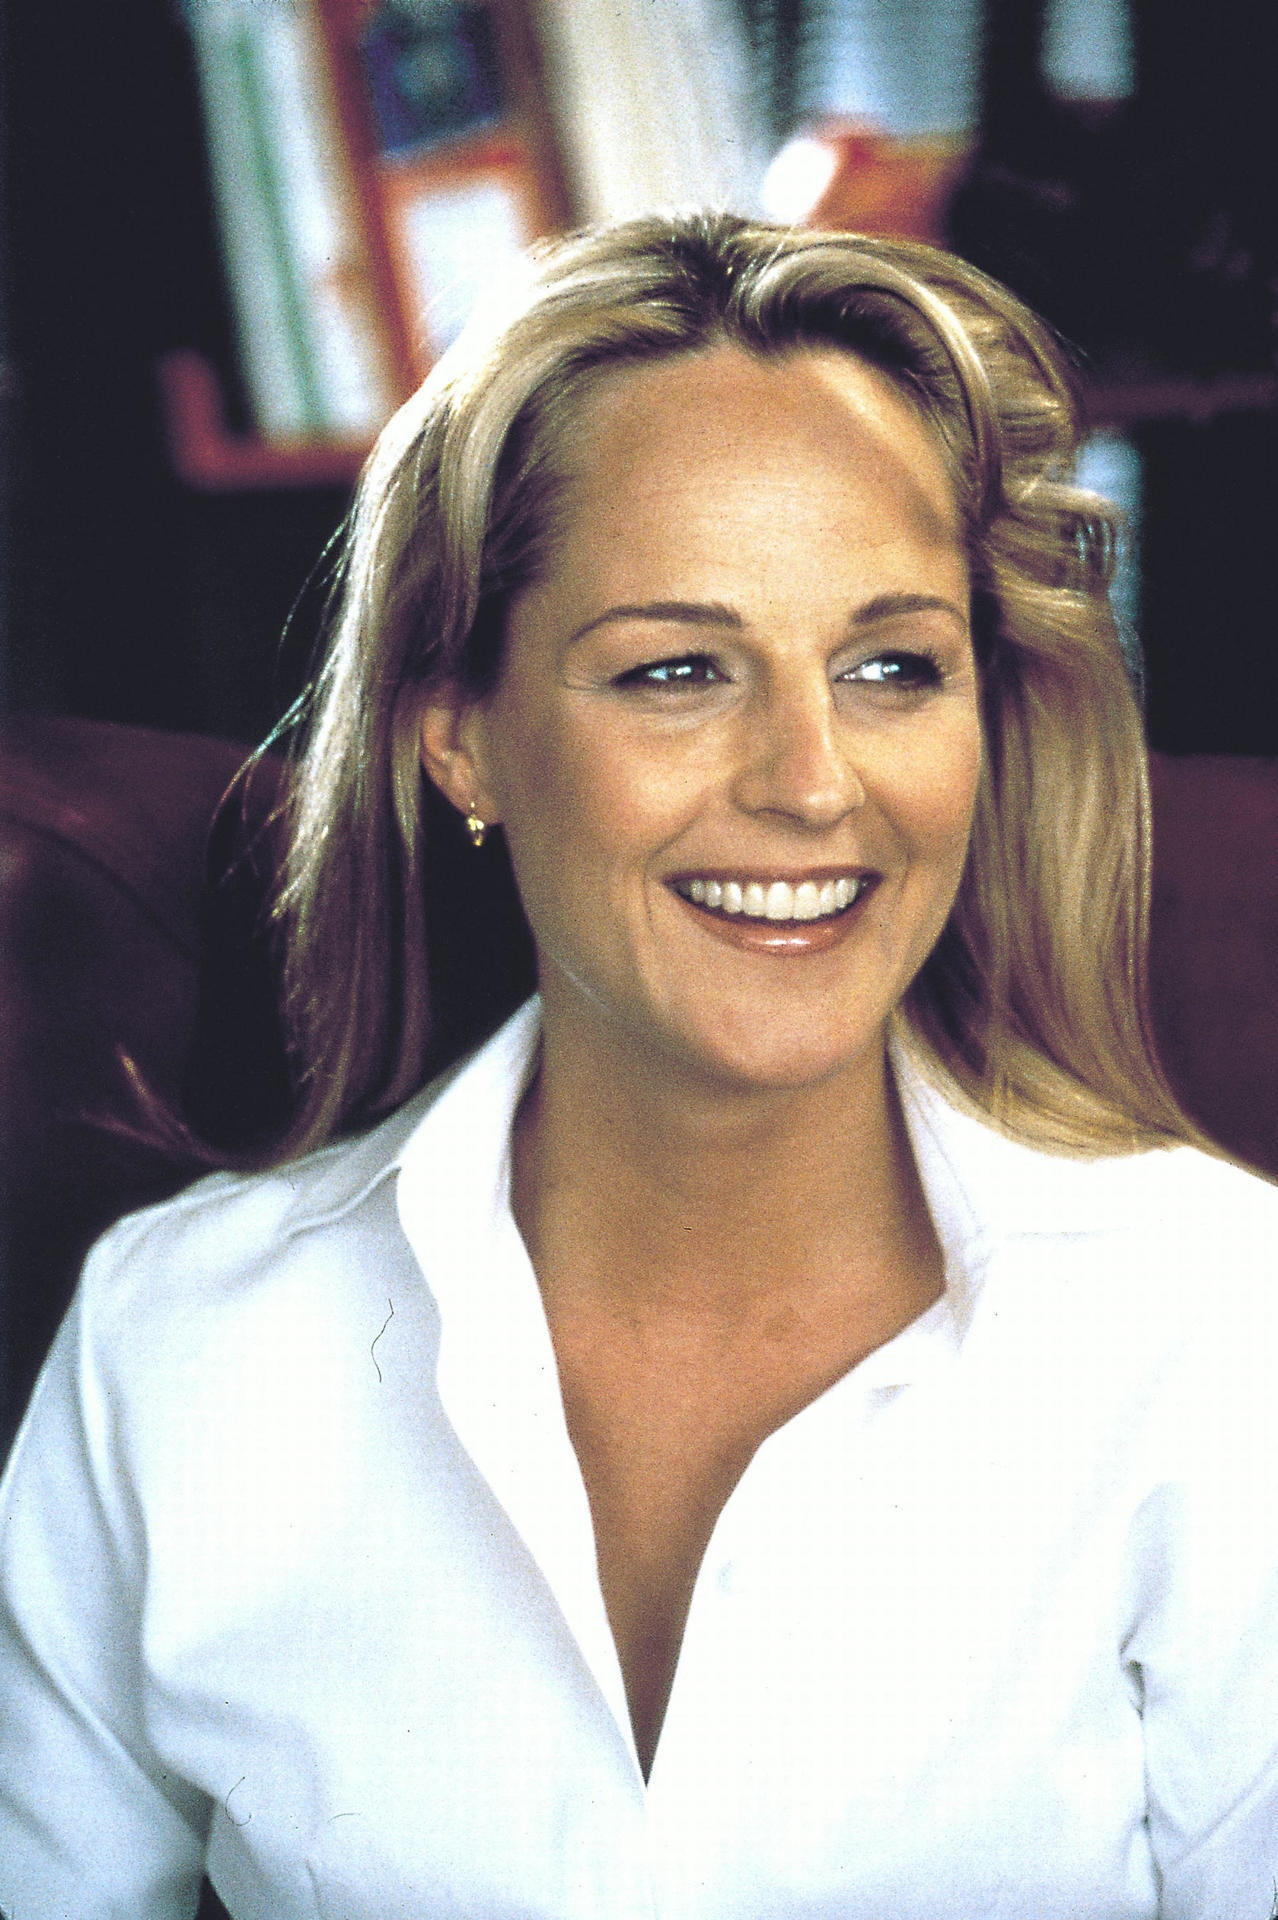 A publicity shot of Helen Hunt